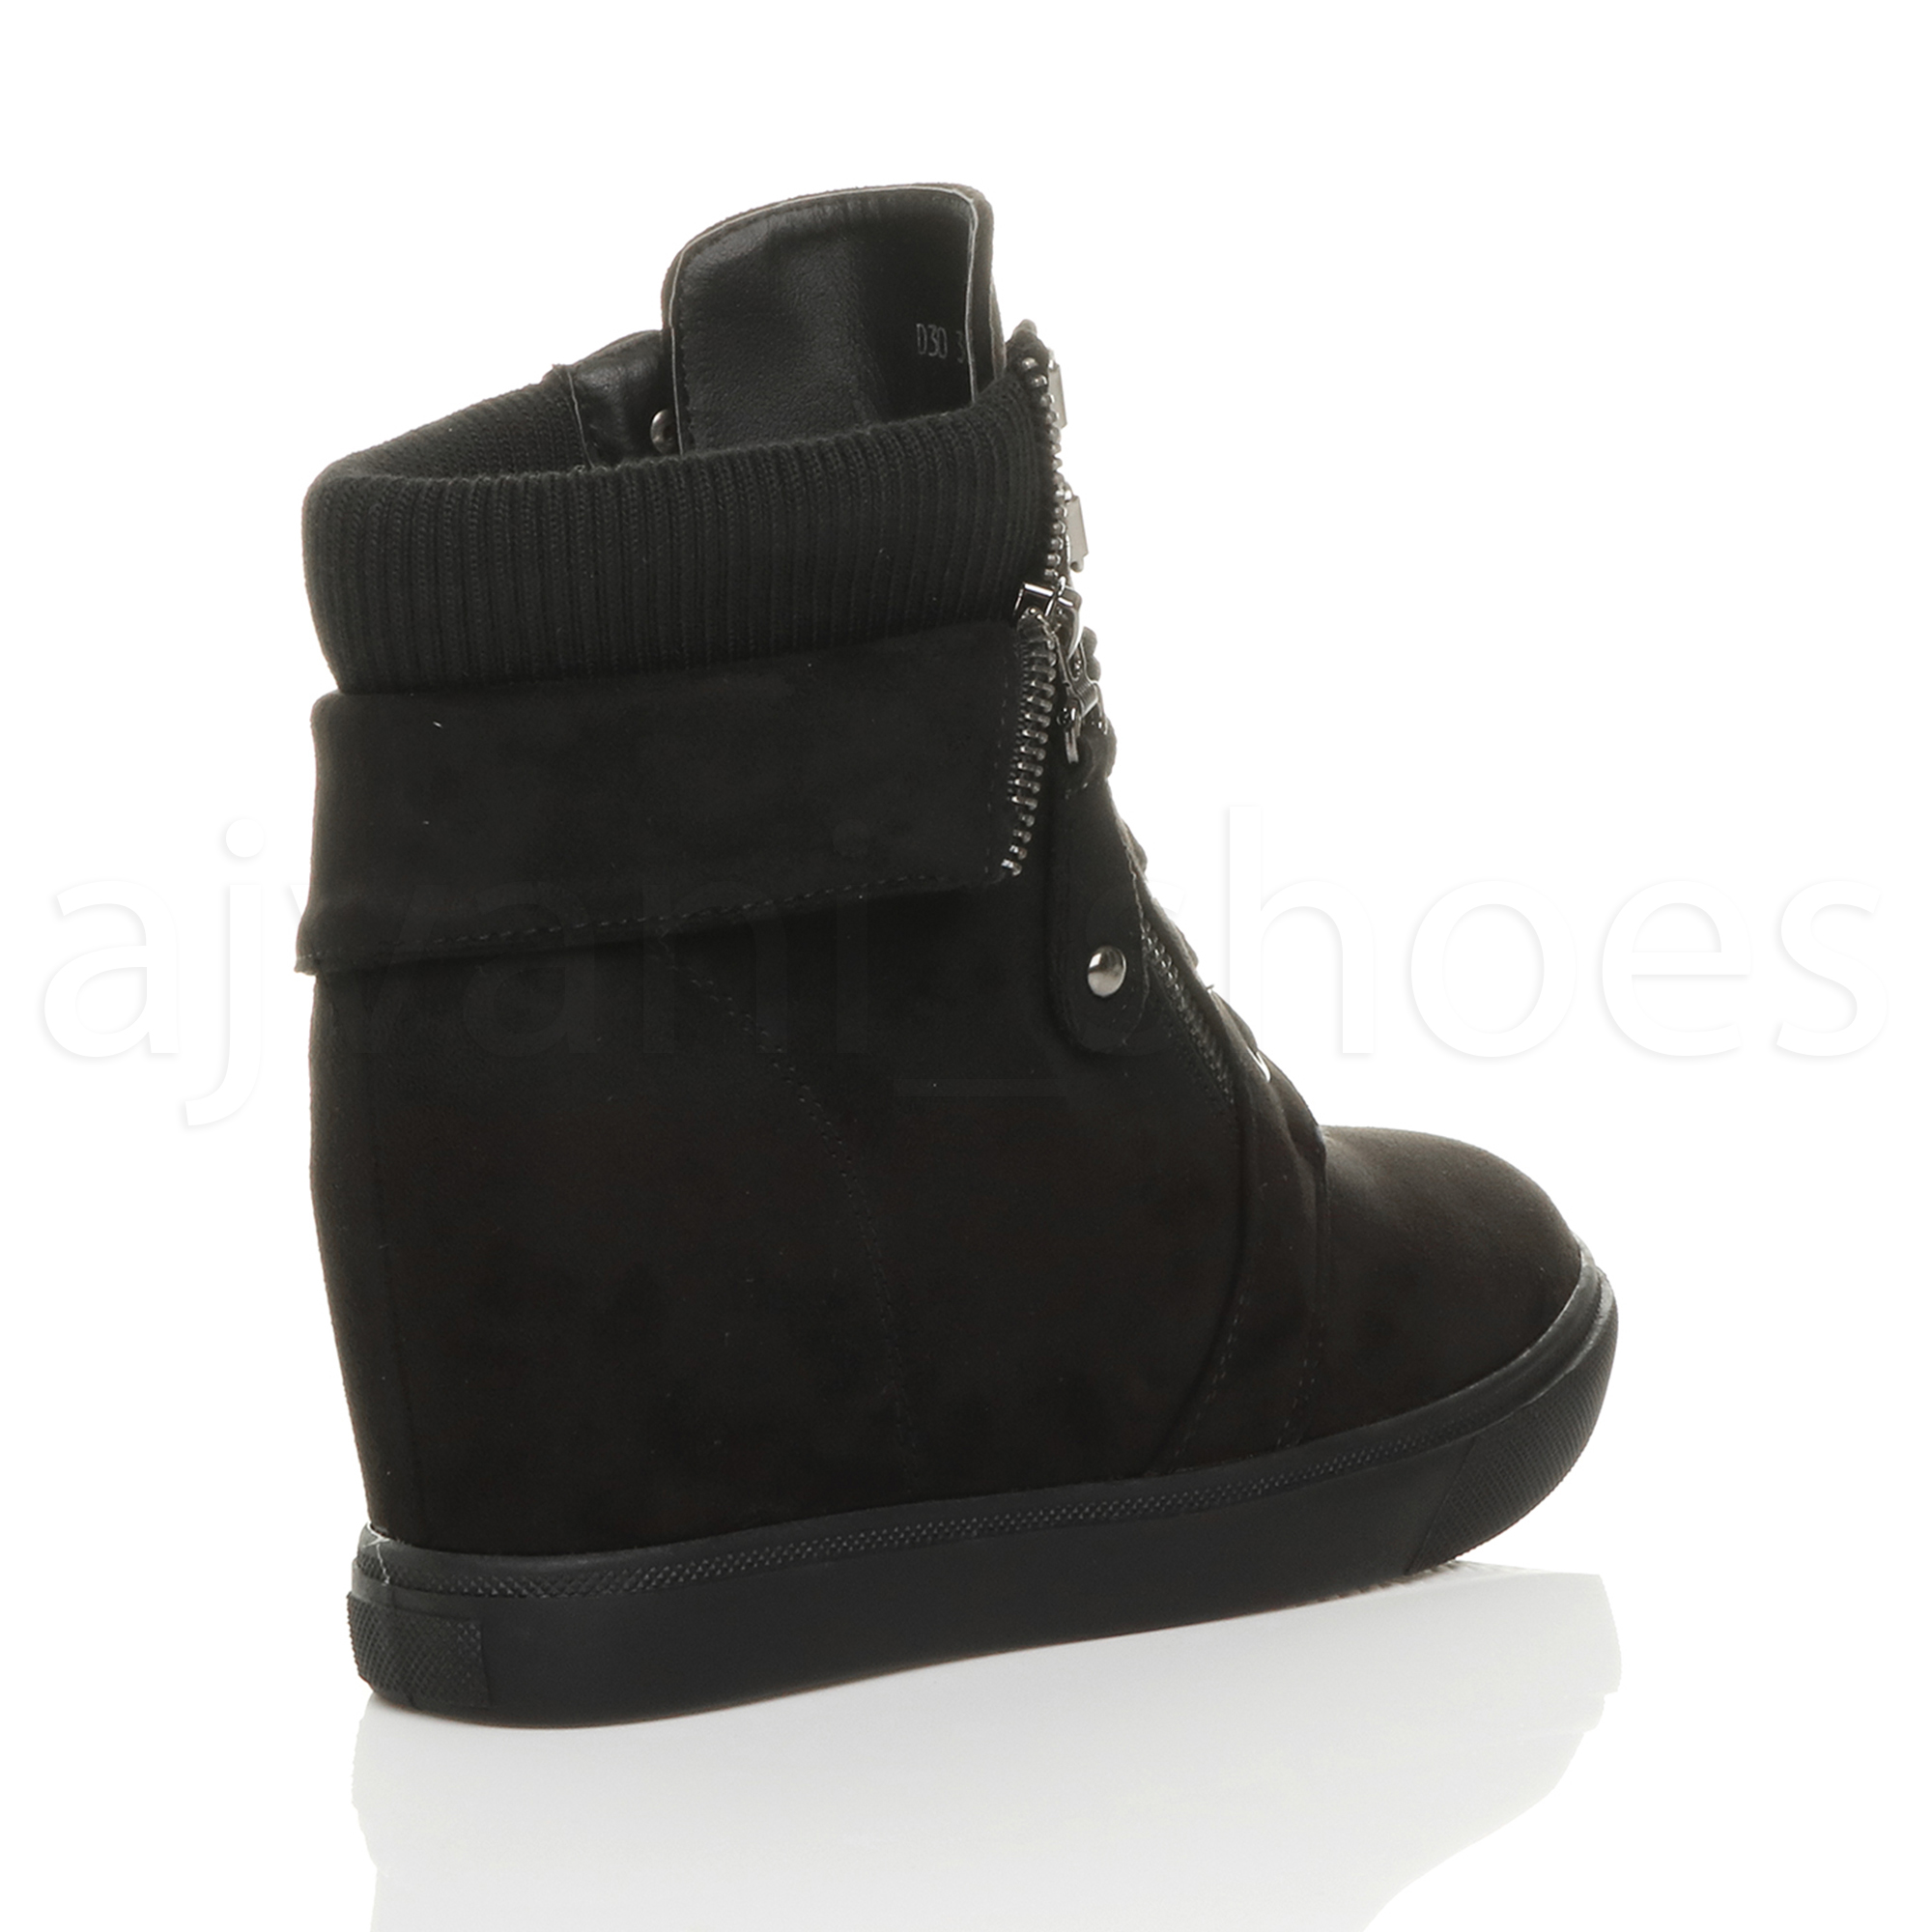 WOMENS-LADIES-MID-CONCEALED-WEDGE-HEEL-KNITTED-COLLAR-ANKLE-BOOTS-TRAINERS-SIZE